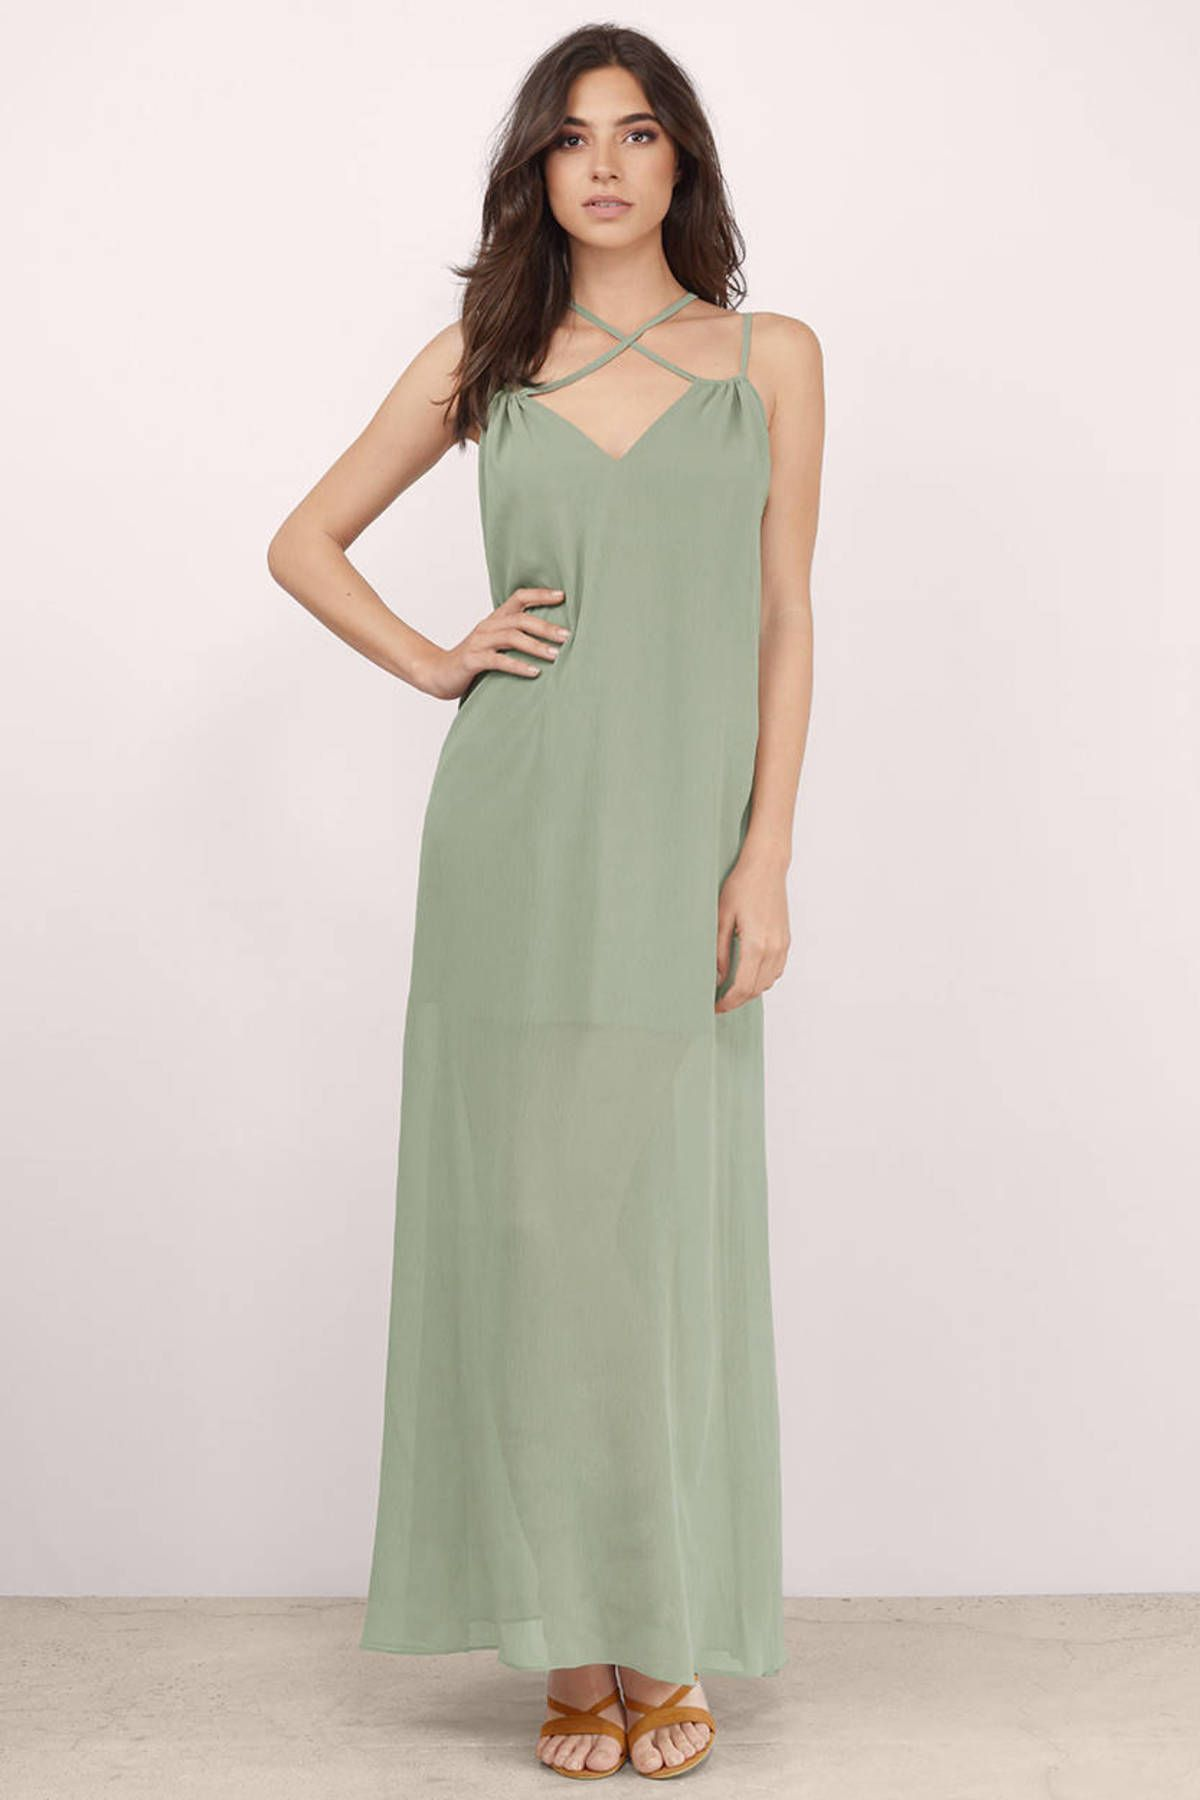 Kings queen maxi dress at tobi shoptobi katie wedding womens maxi dresses for every occasion the most effortless throw on and go staple of the season ombrellifo Image collections